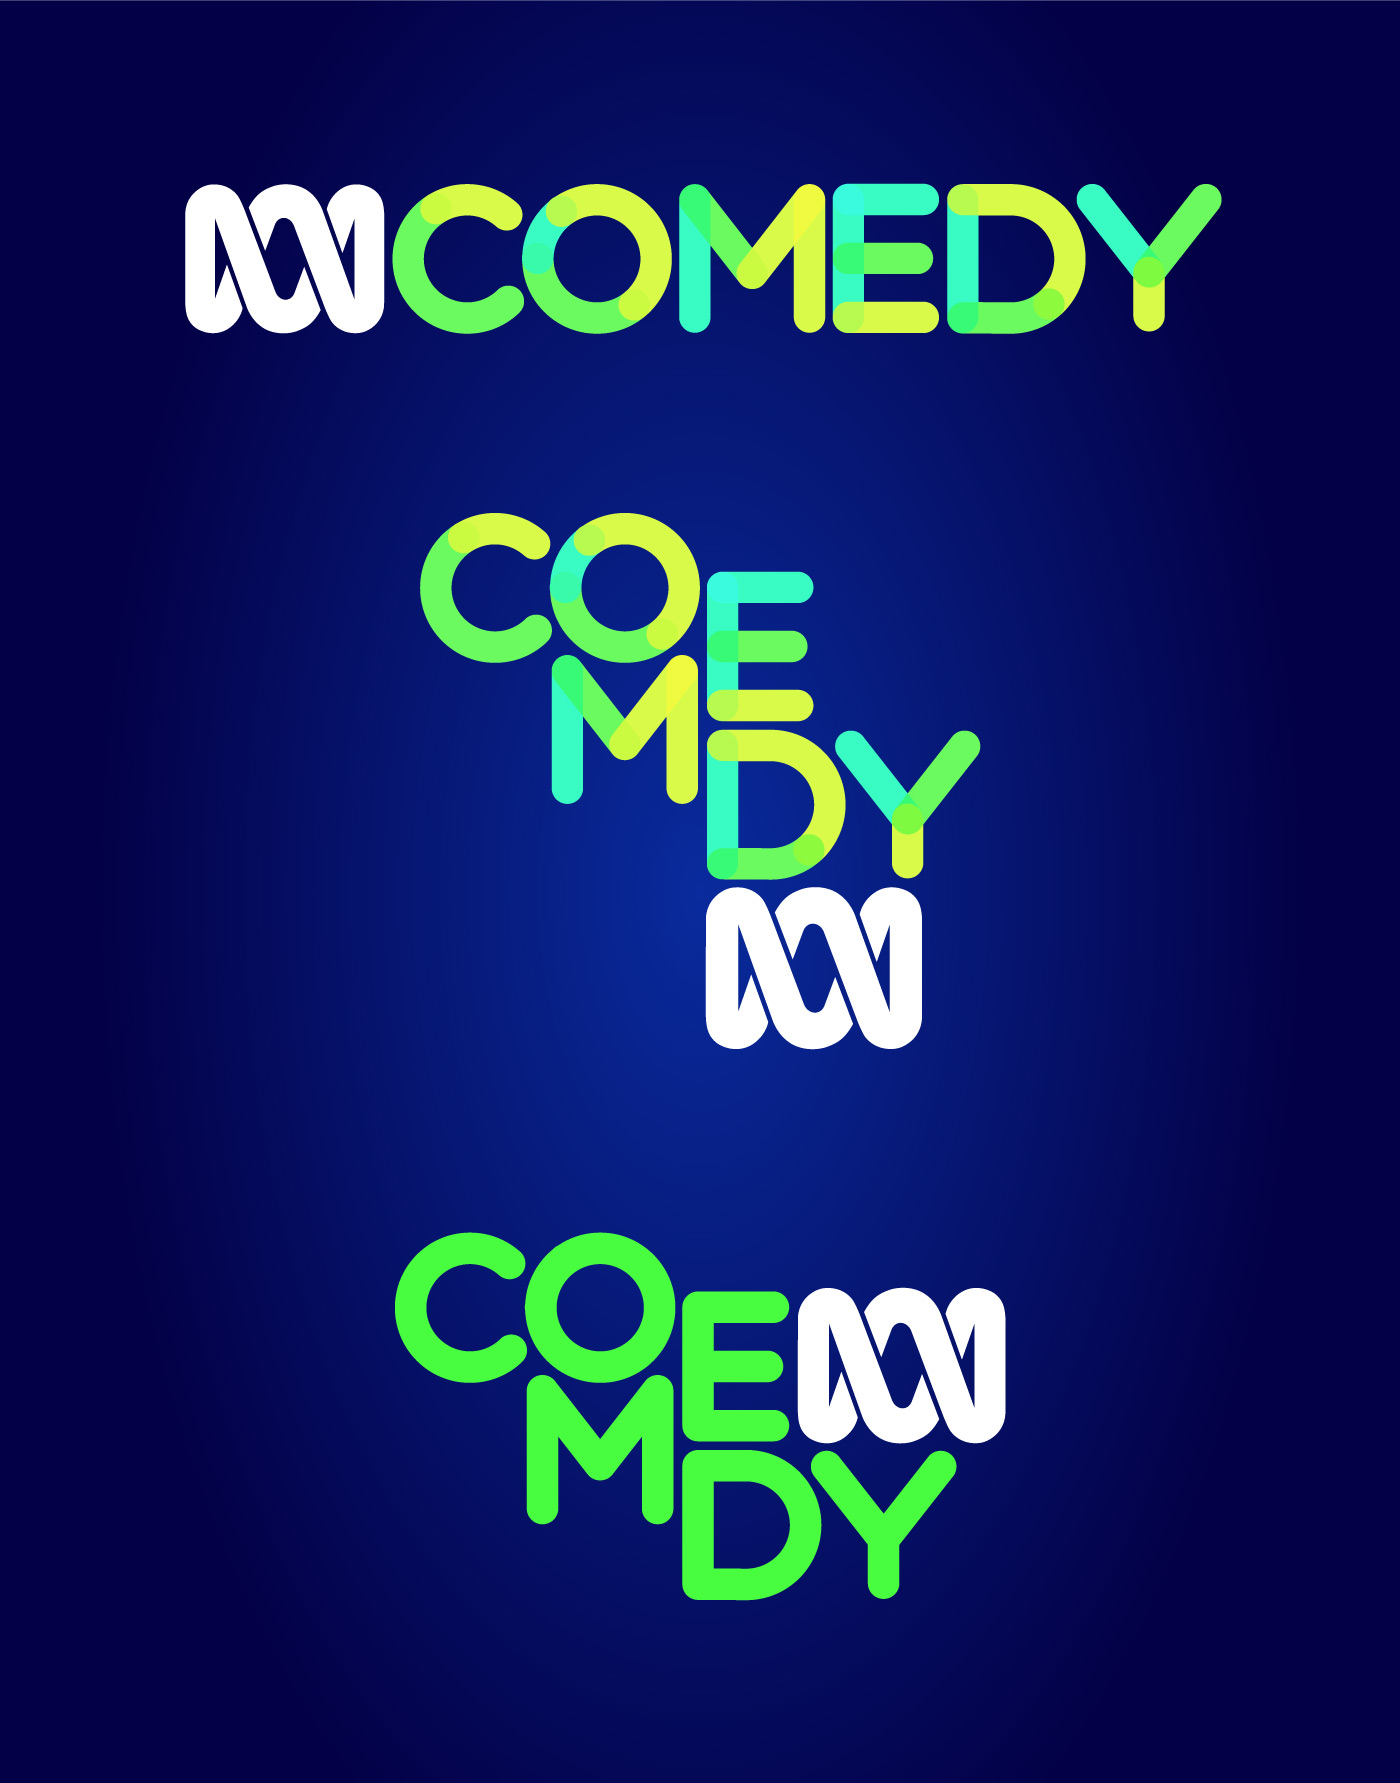 New ABC Comedy logo variants (reversed)